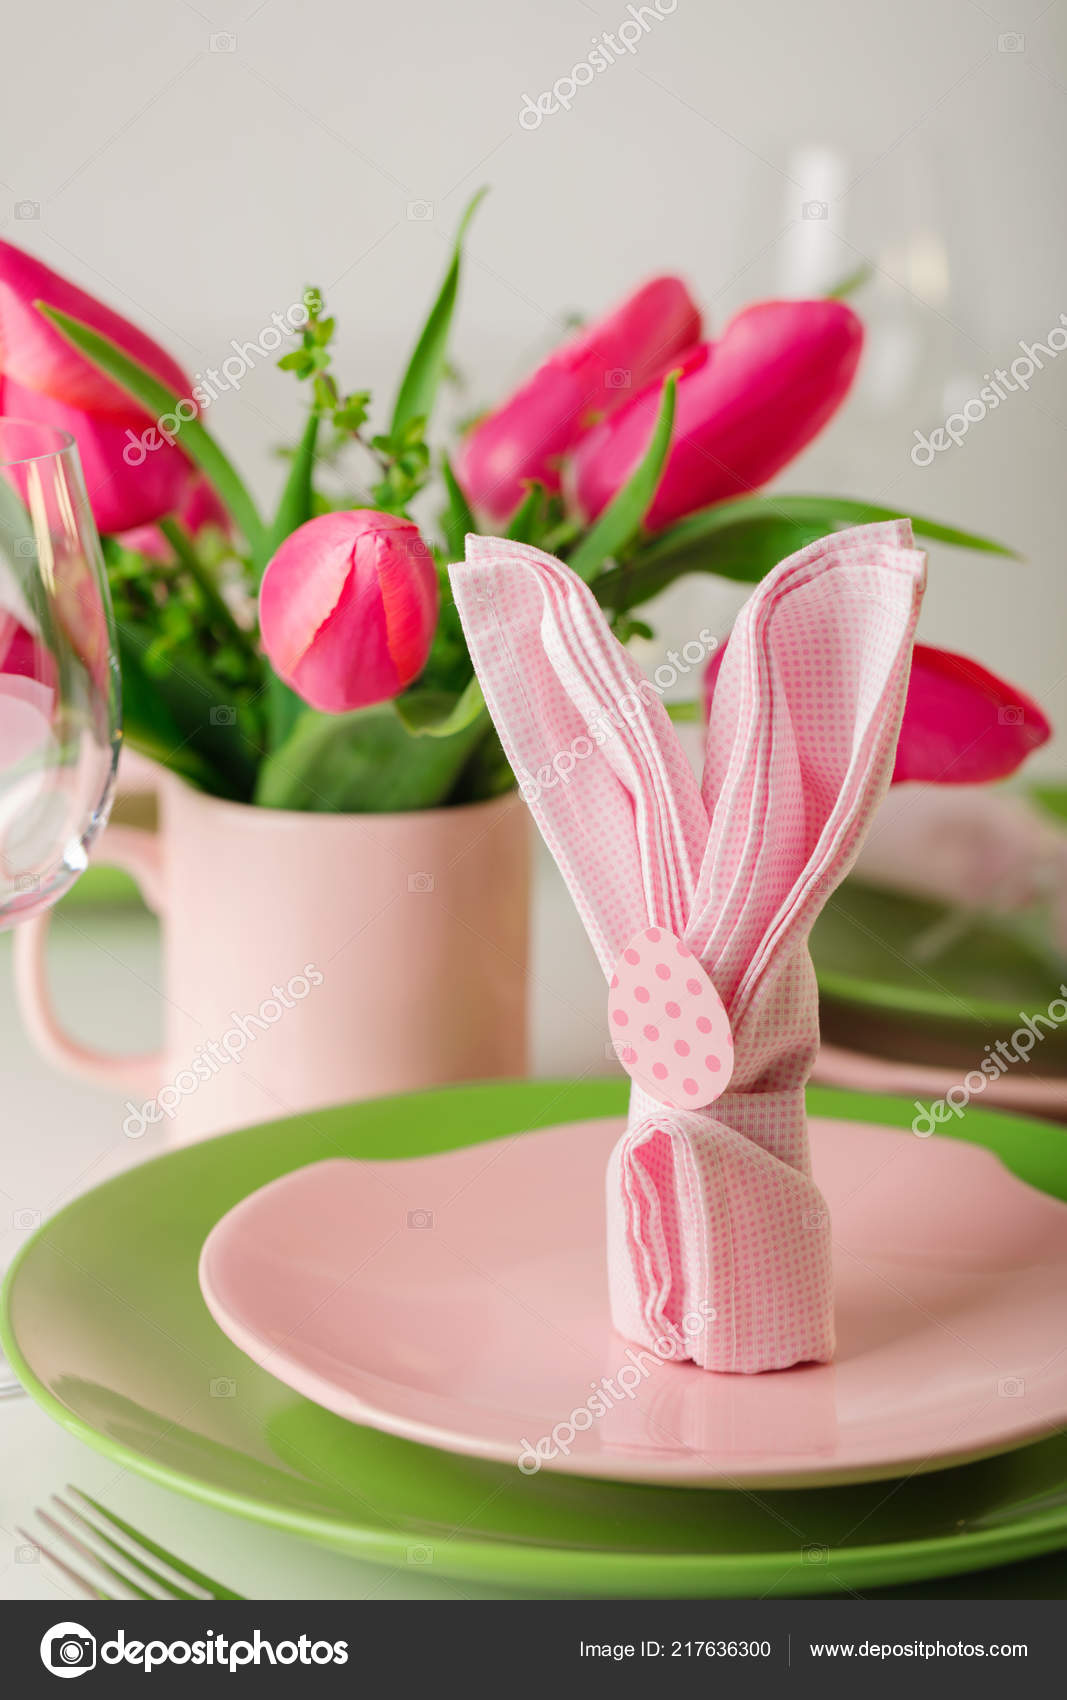 happy easter decor table setting easter table vase pink tulips